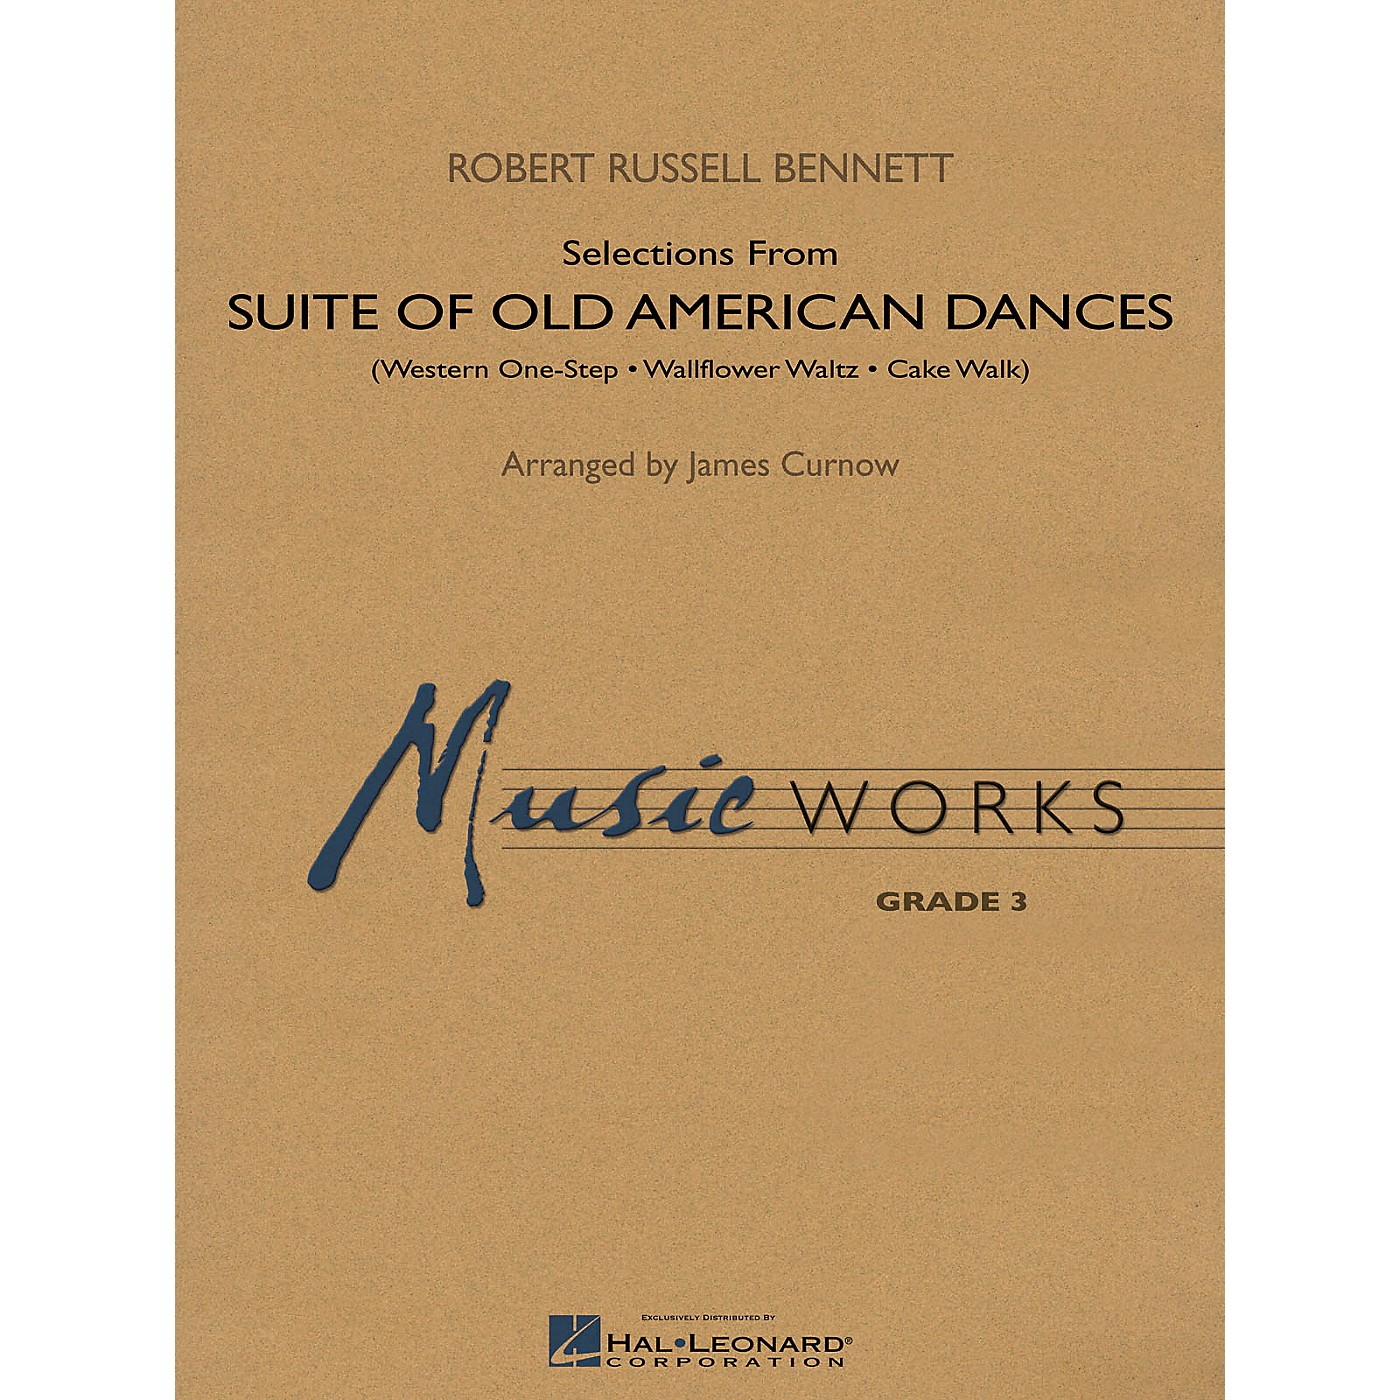 Hal Leonard Suite of Old American Dances (Selections) Concert Band Level 3 Arranged by James Curnow thumbnail